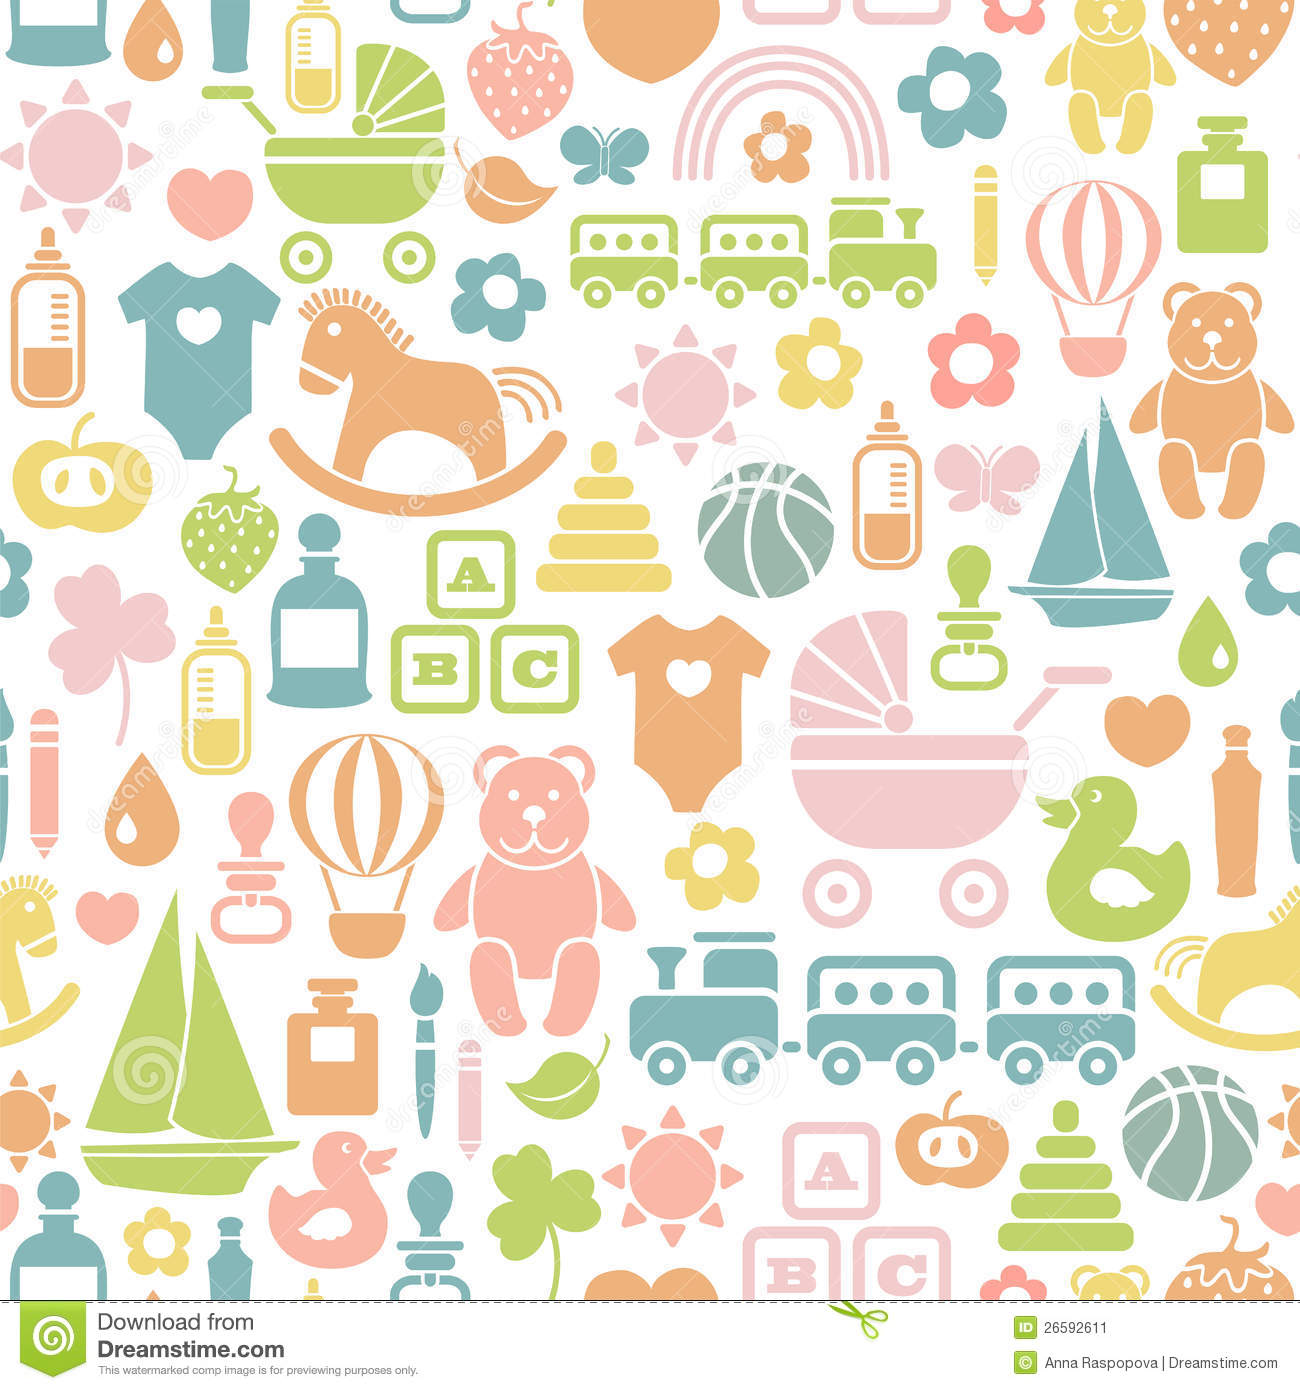 Baby Patterns : Baby Pattern Stock Image - Image: 26592611